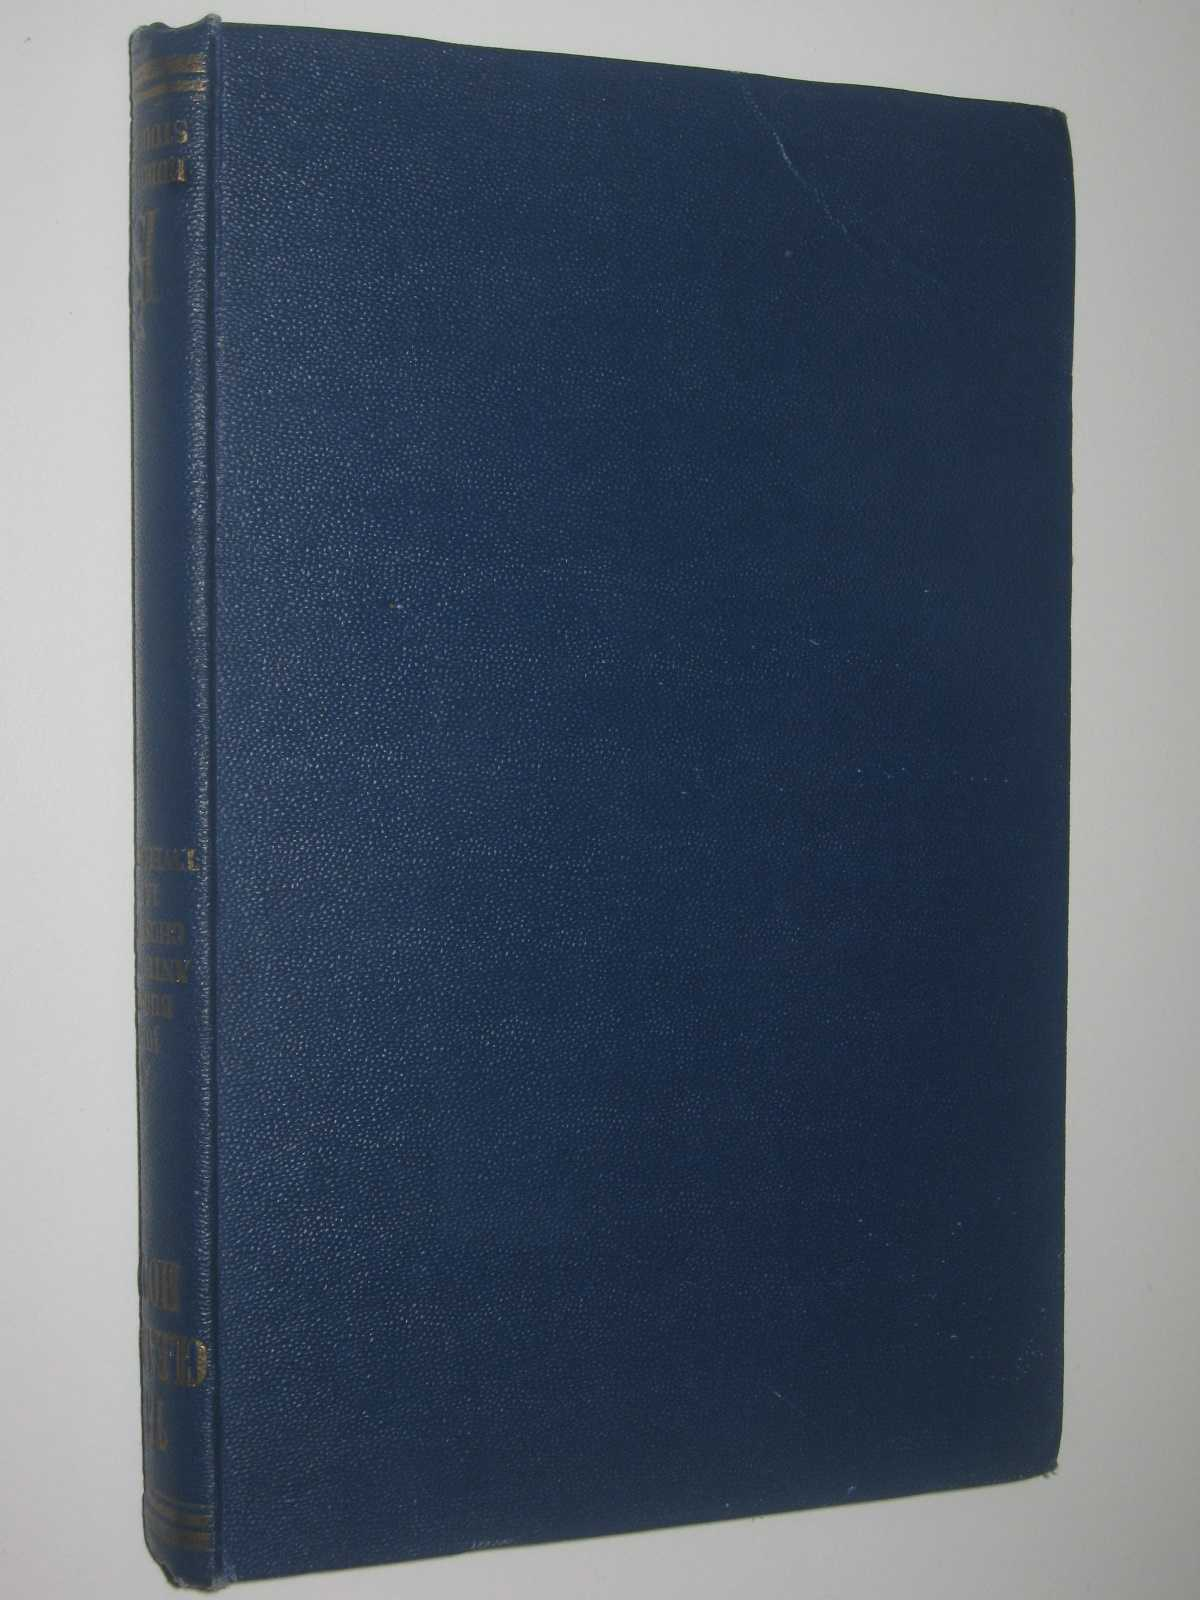 The Clearing House : A Survey of One Man's Mind, Buchan, John